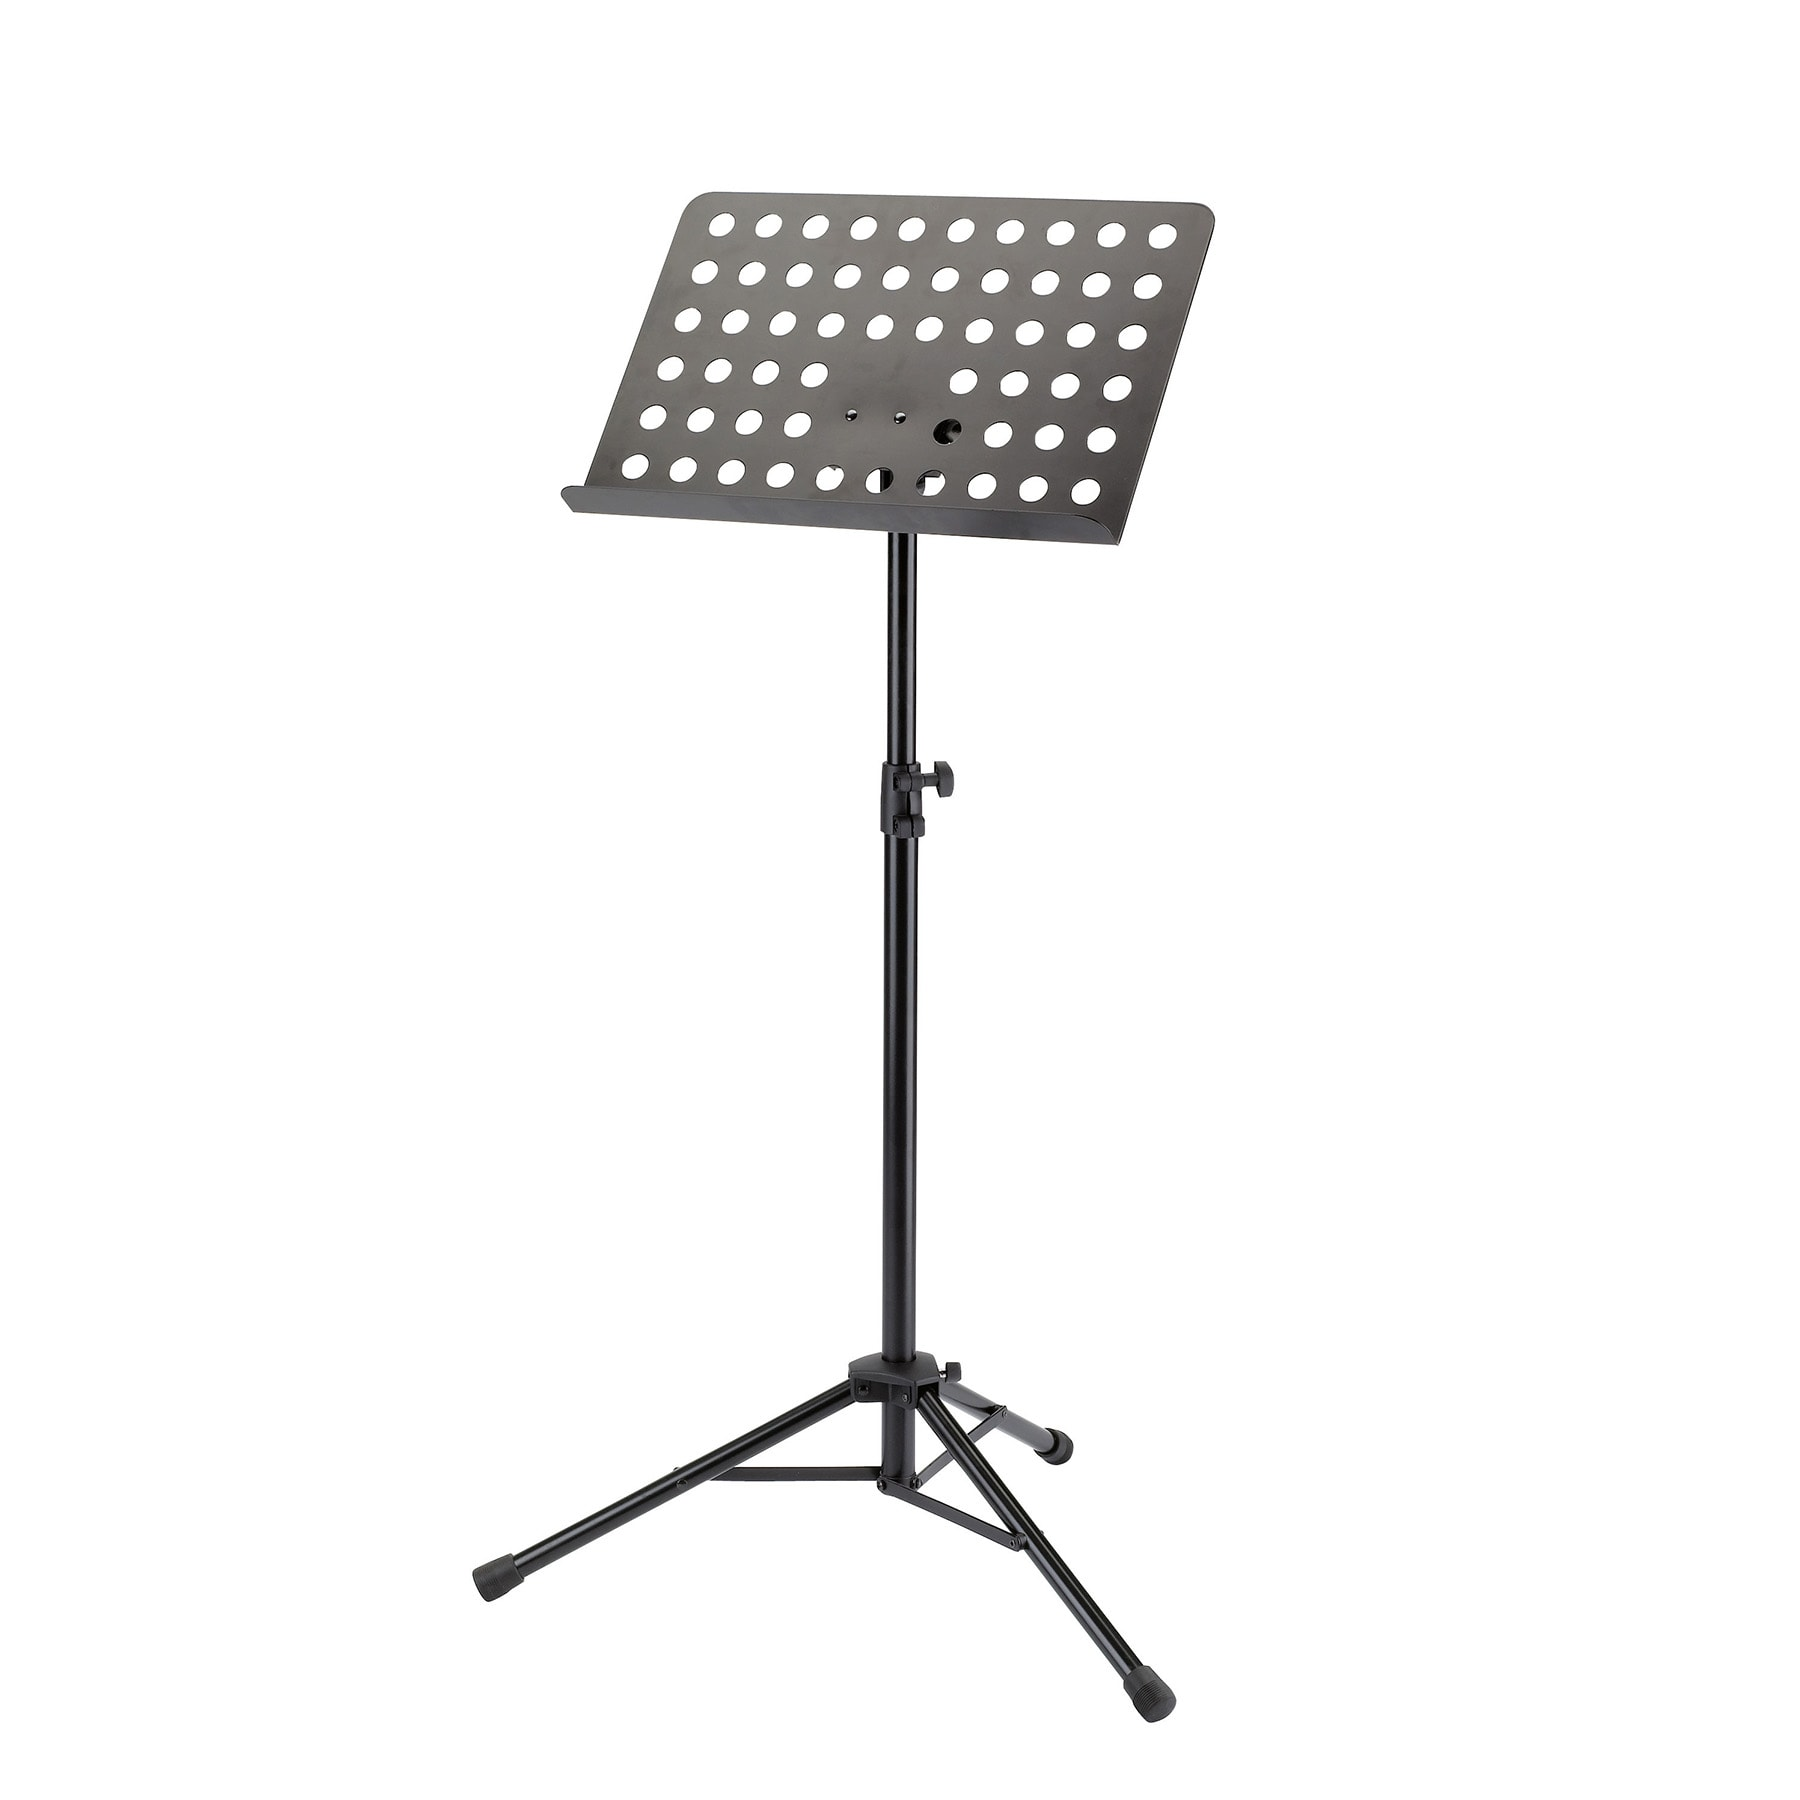 KM11940 - Orchestra music stand